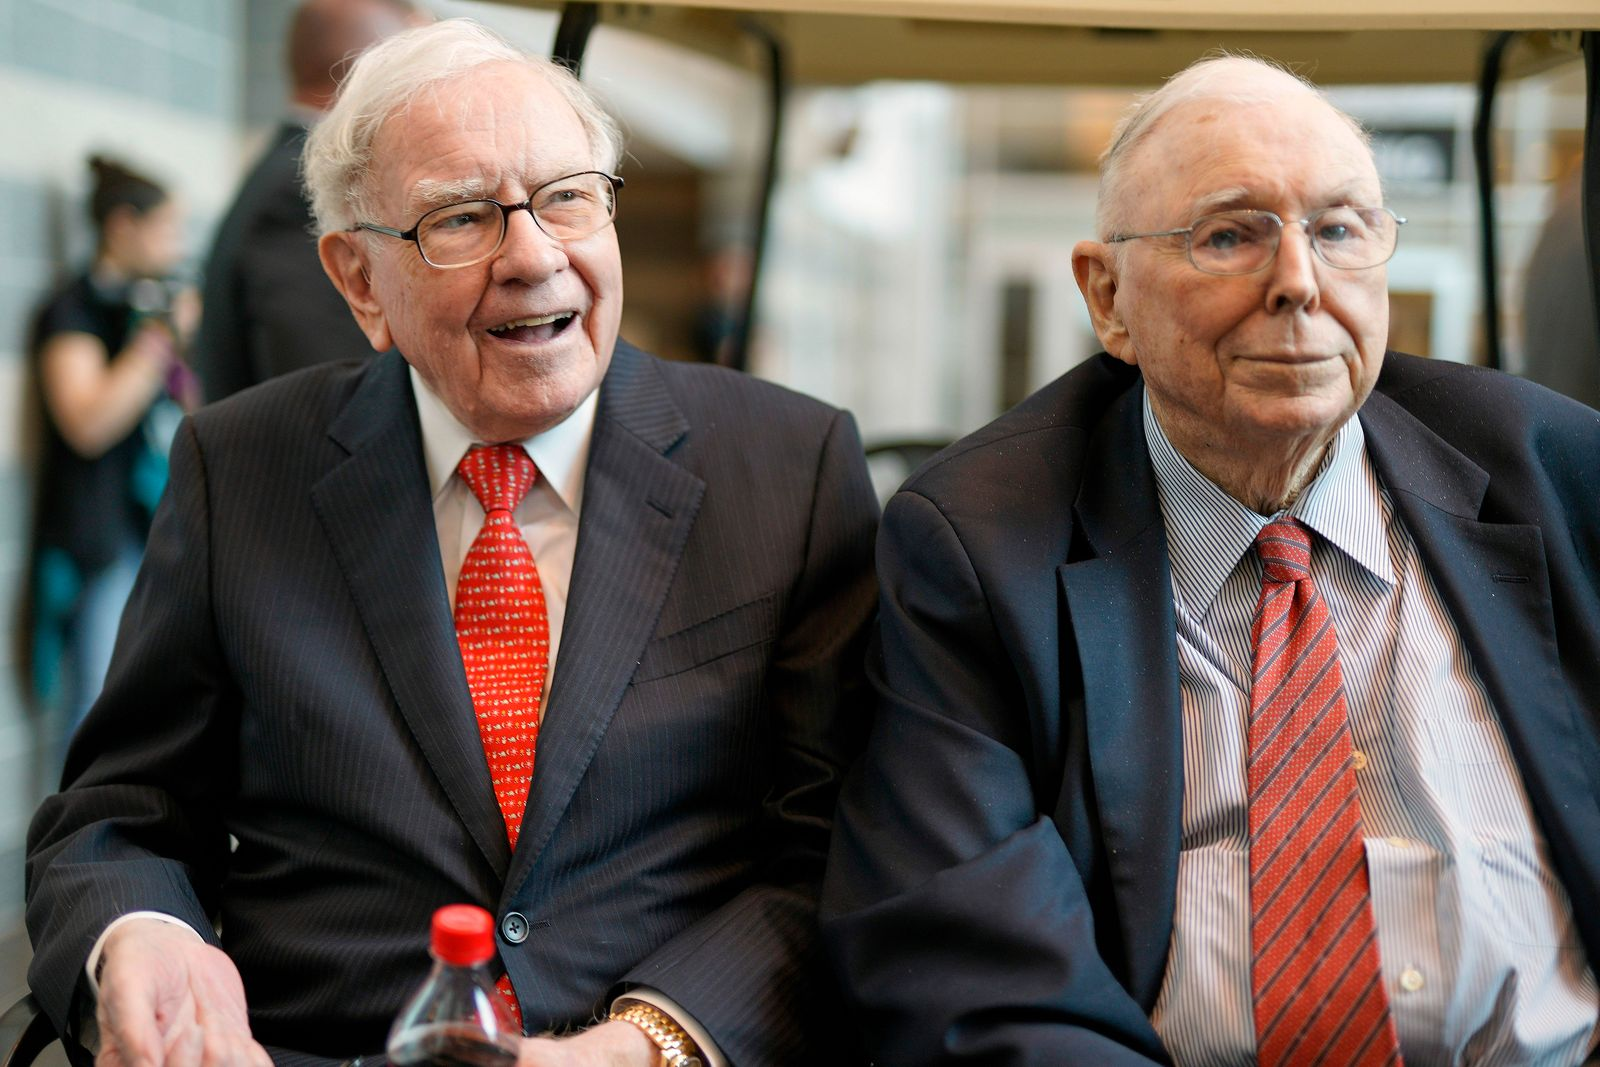 Berkshire Hathaway - Warren Buffett